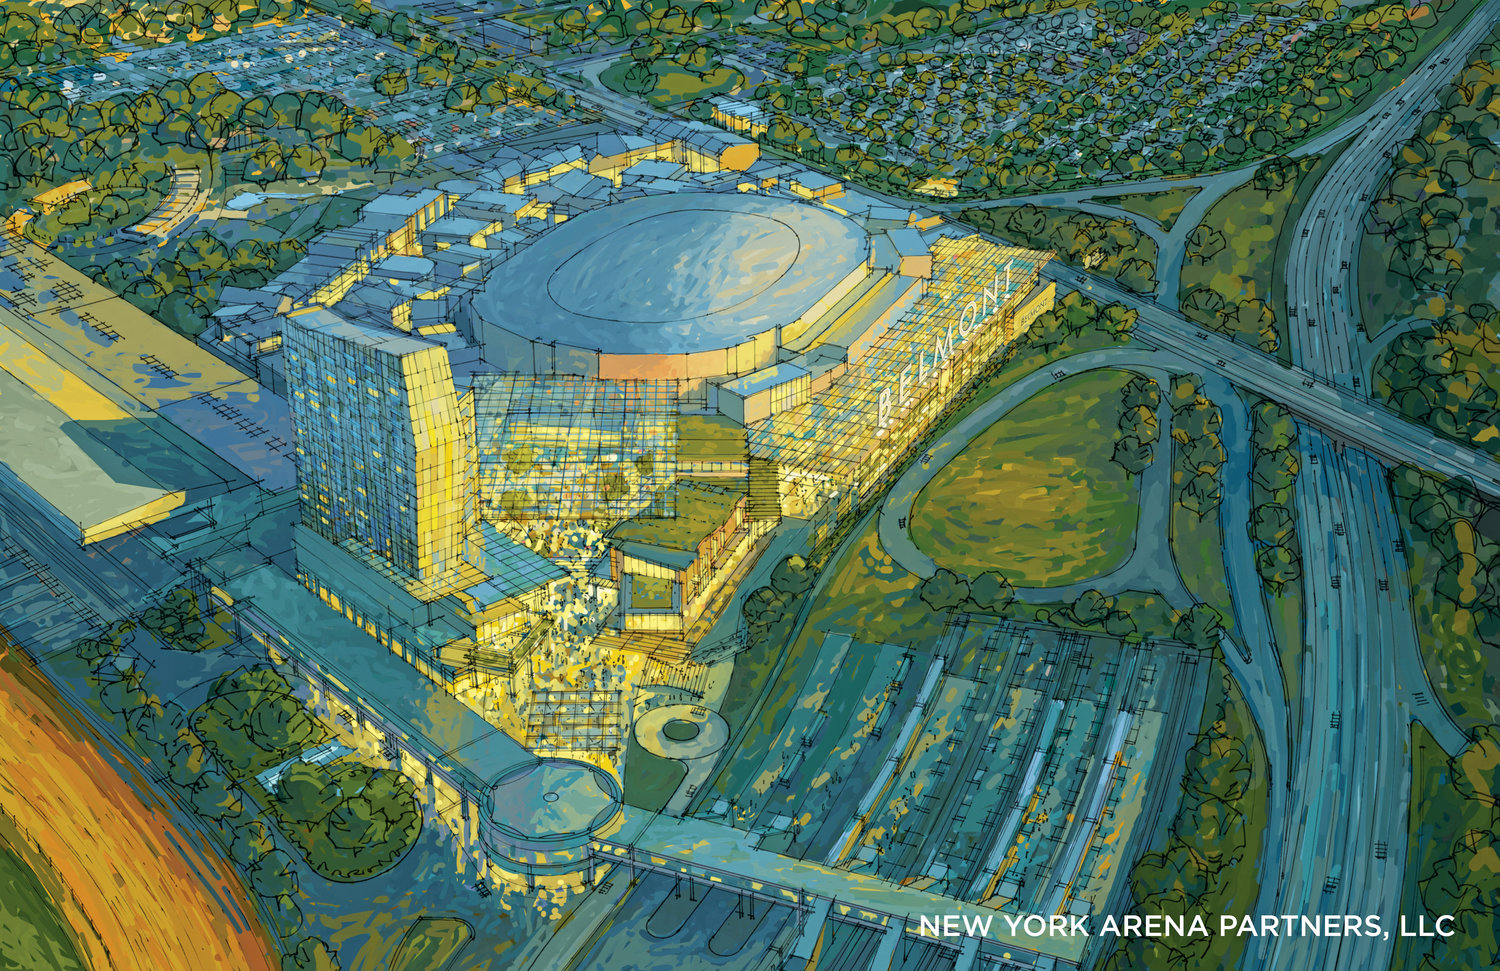 The Empire Stave Development Corporation described the proposed Belmont arena as a project that would be a 'gateway to Long Island by creating a striking new presence for town, county and region, and the project will transform the current vacant, underutilized, and deteriorated development sites for the benefit of the municipality and the community.'